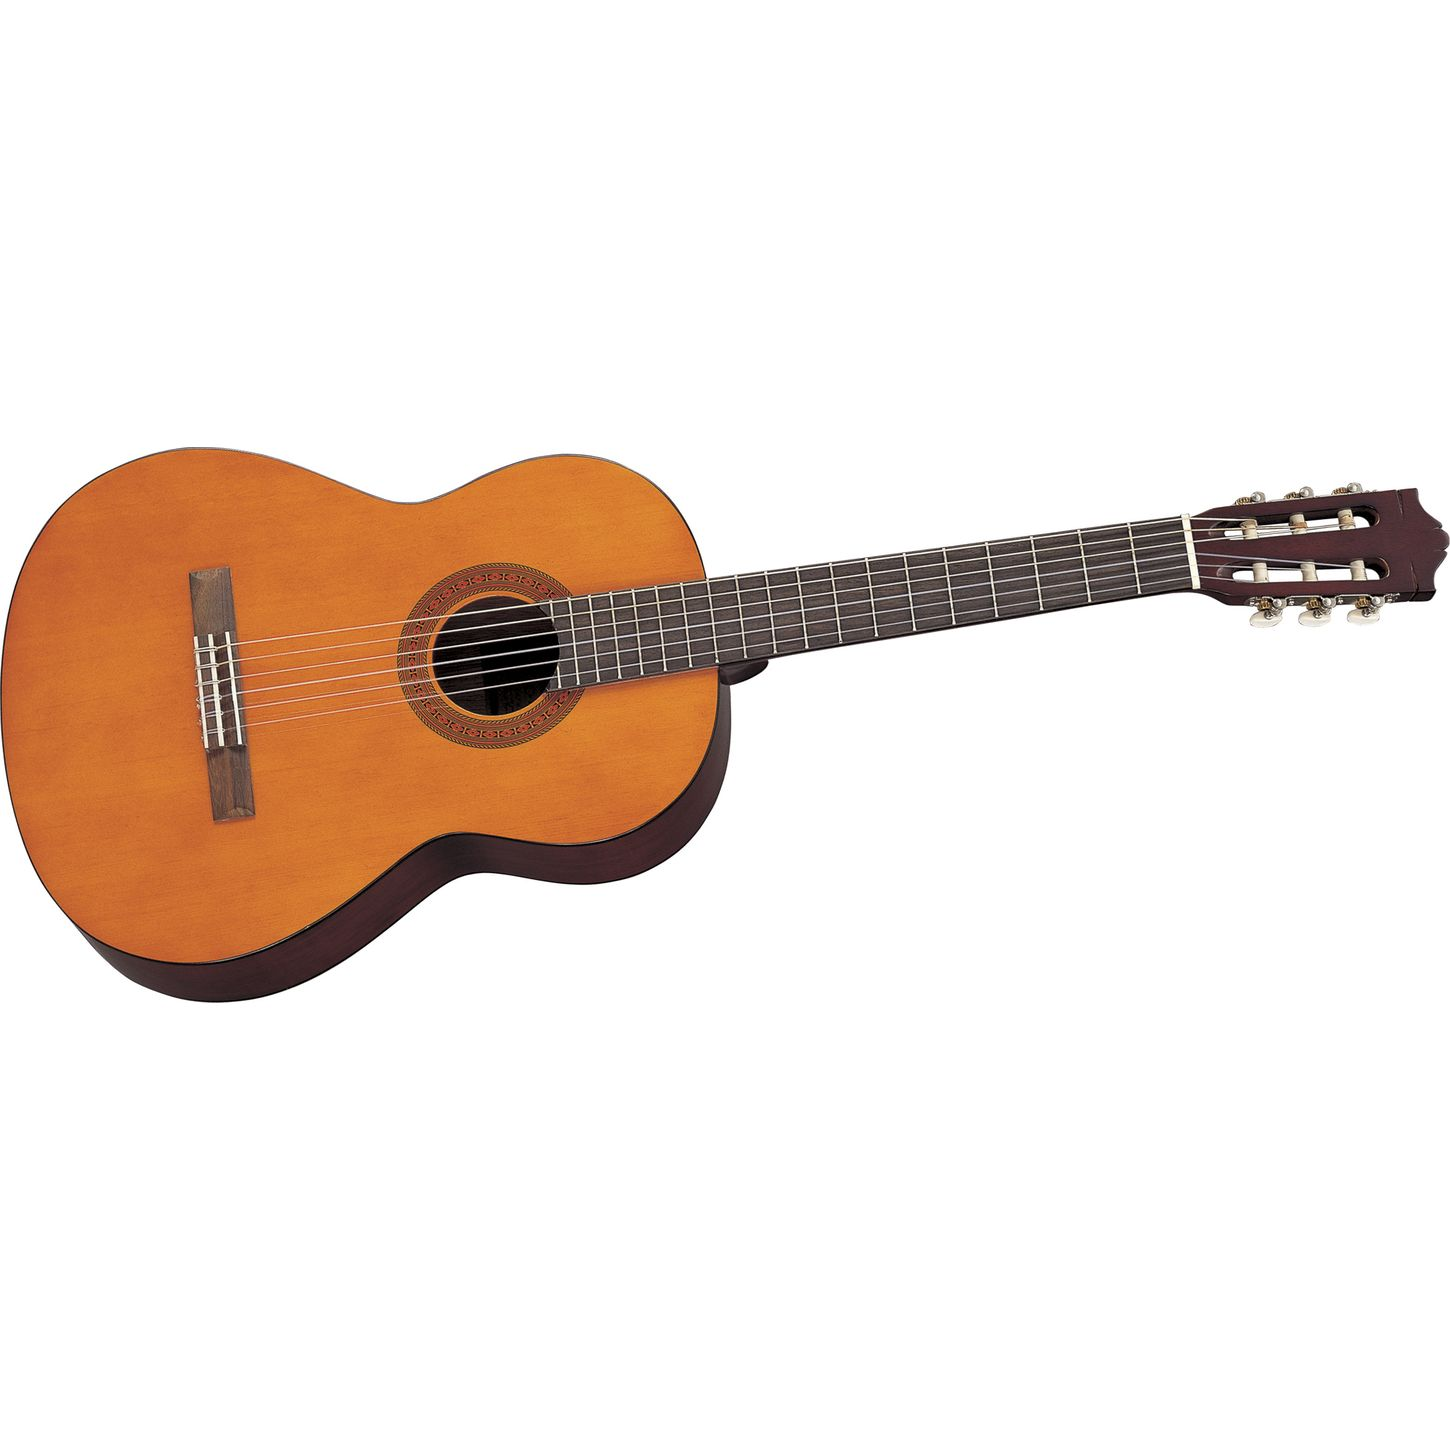 yamaha c40 gigmaker classical acoustic guitar pack natural musician 39 s friend. Black Bedroom Furniture Sets. Home Design Ideas